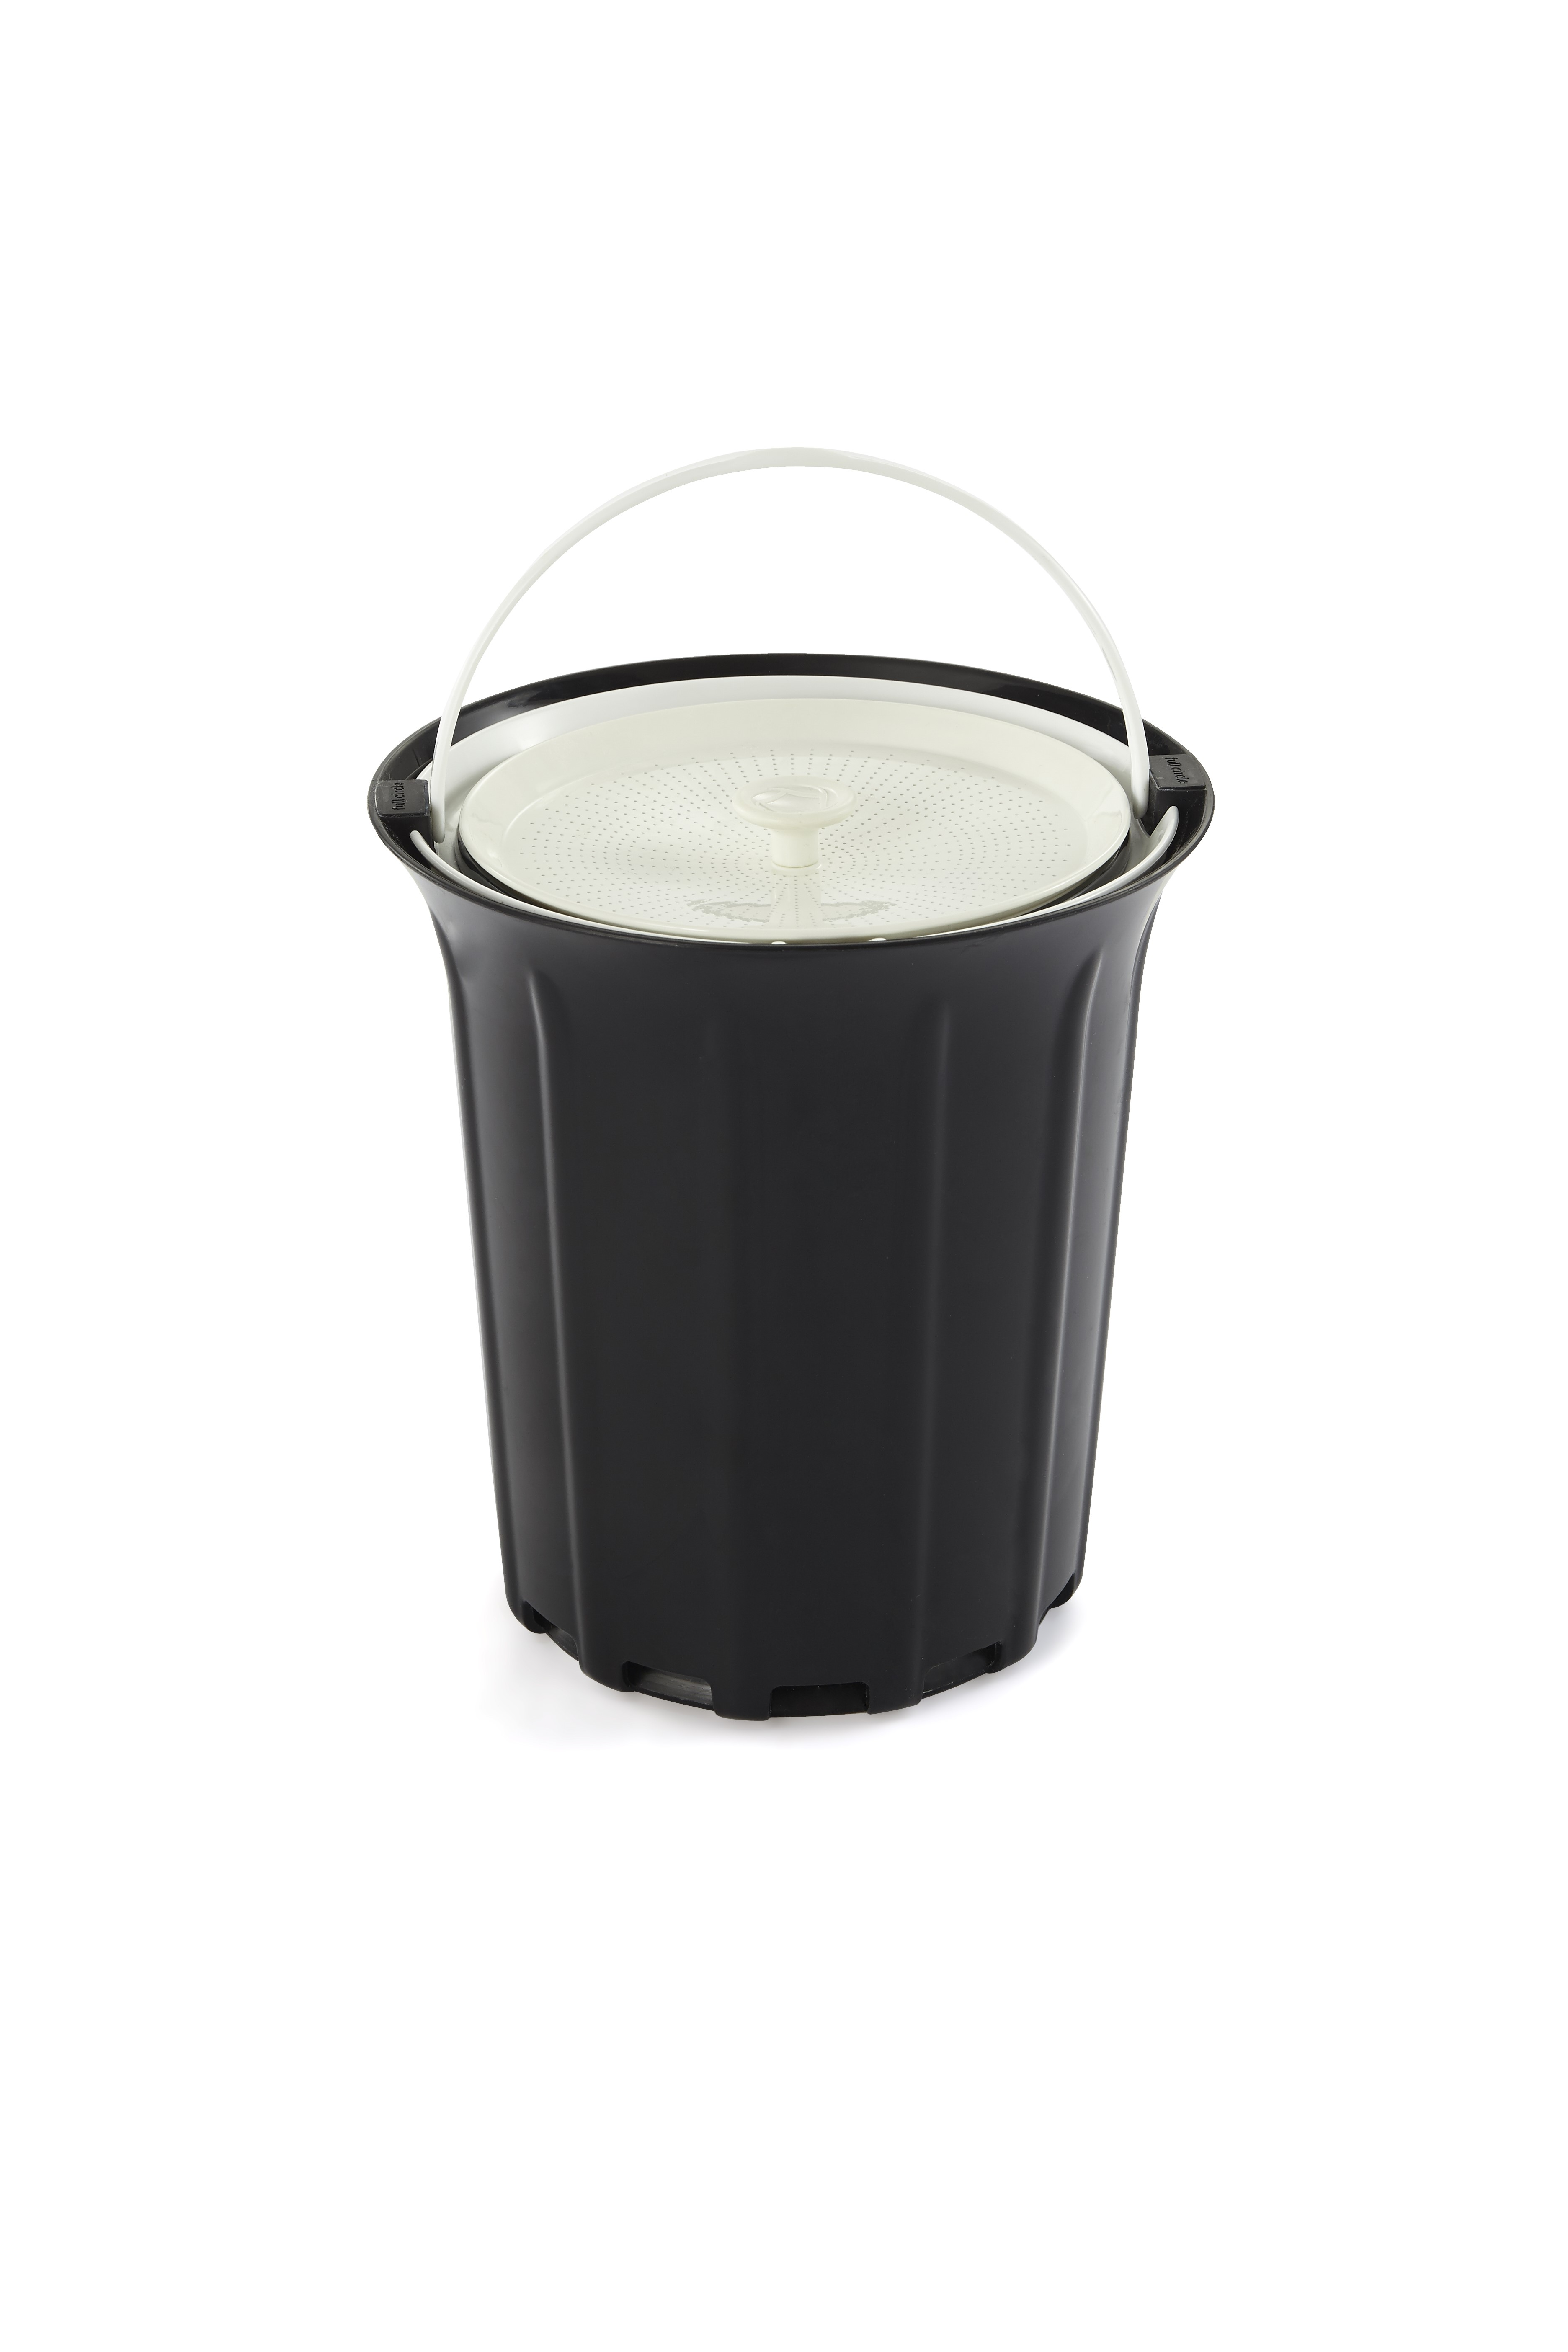 Full Circle Breeze Odor-Free Countertop Compost Collector, Black & White by Full Circle Home, LLC